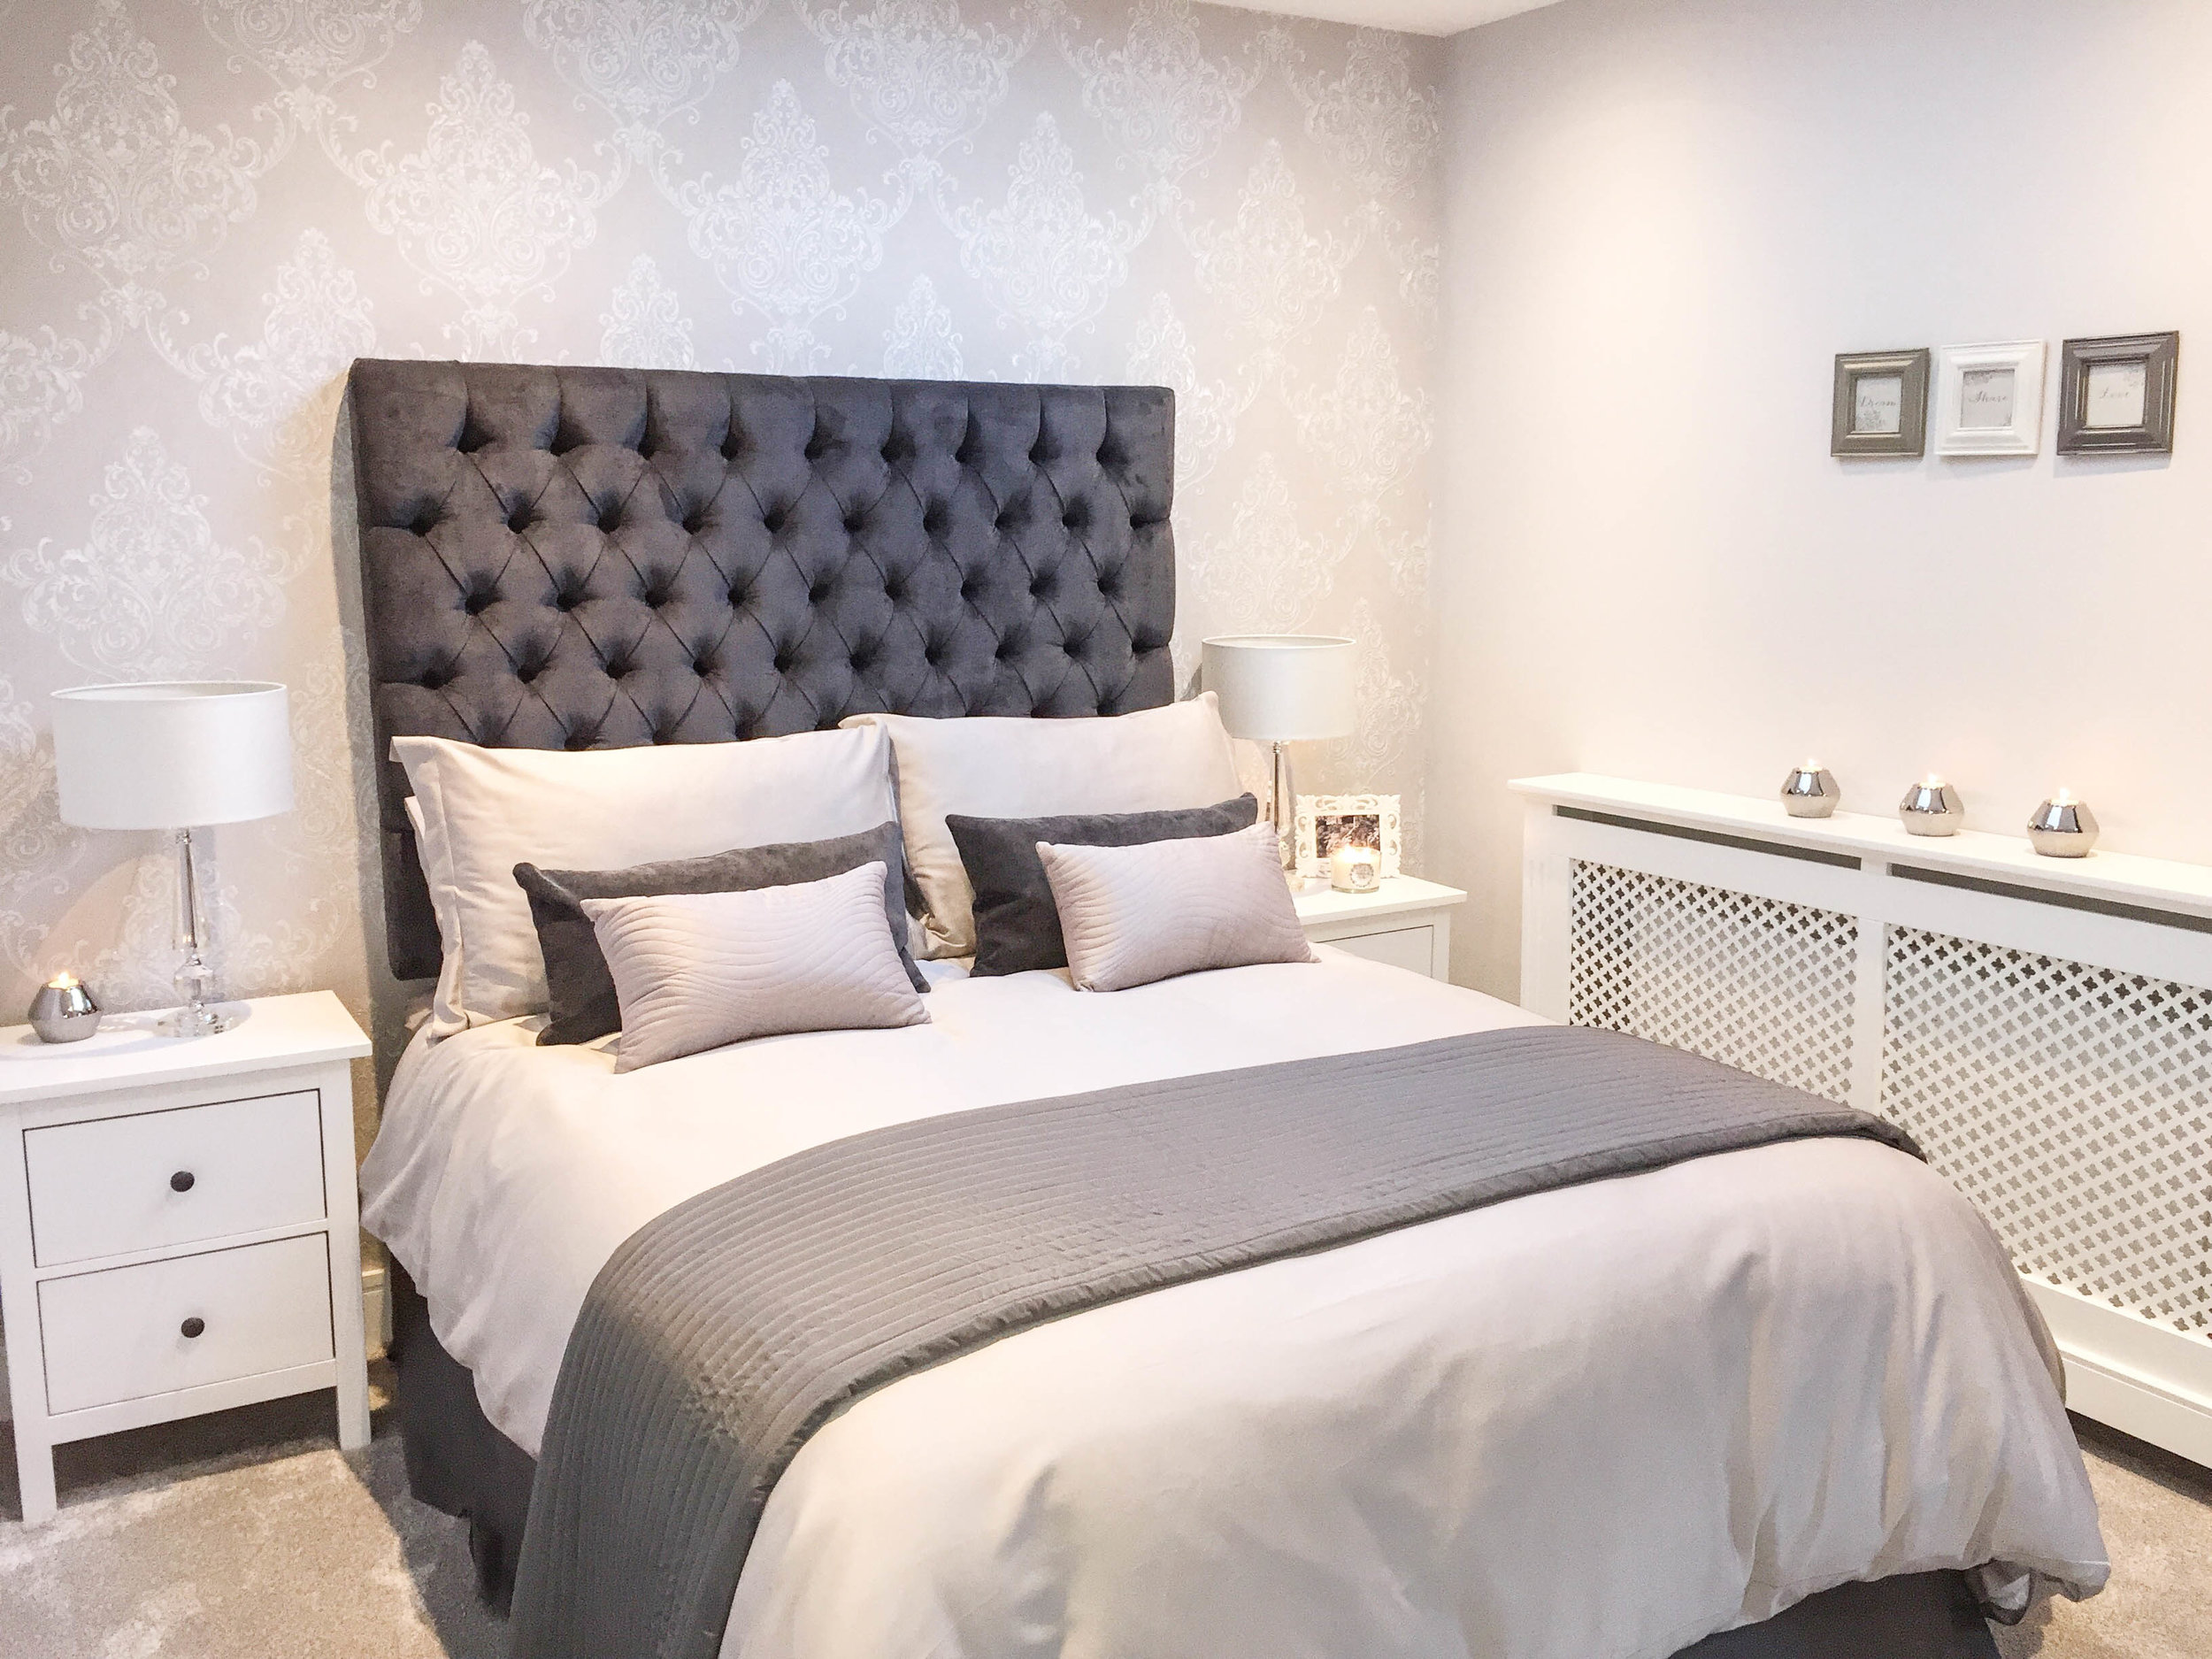 Bedroom Design - Stillorgan (after photo)